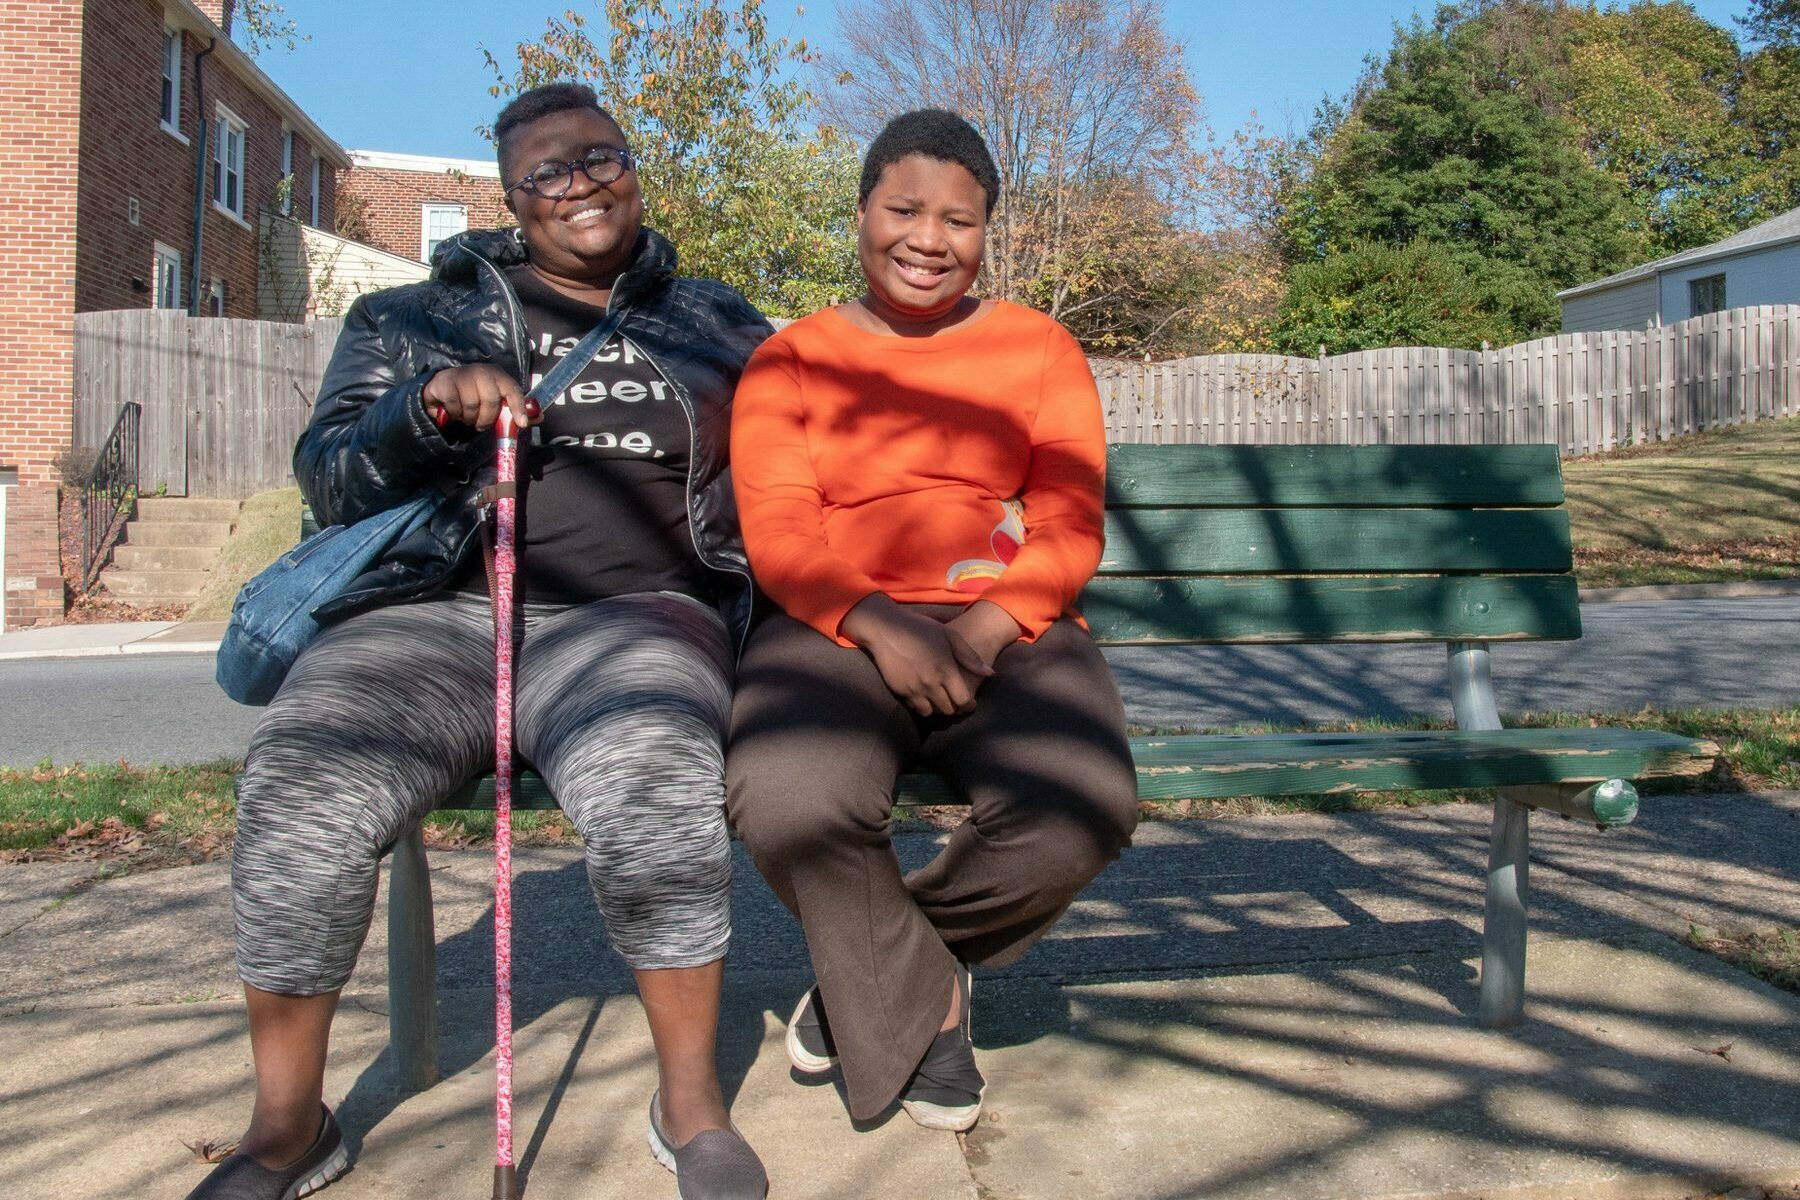 DeShanna Neal and her daughter Trinity Neal, on a park bench.